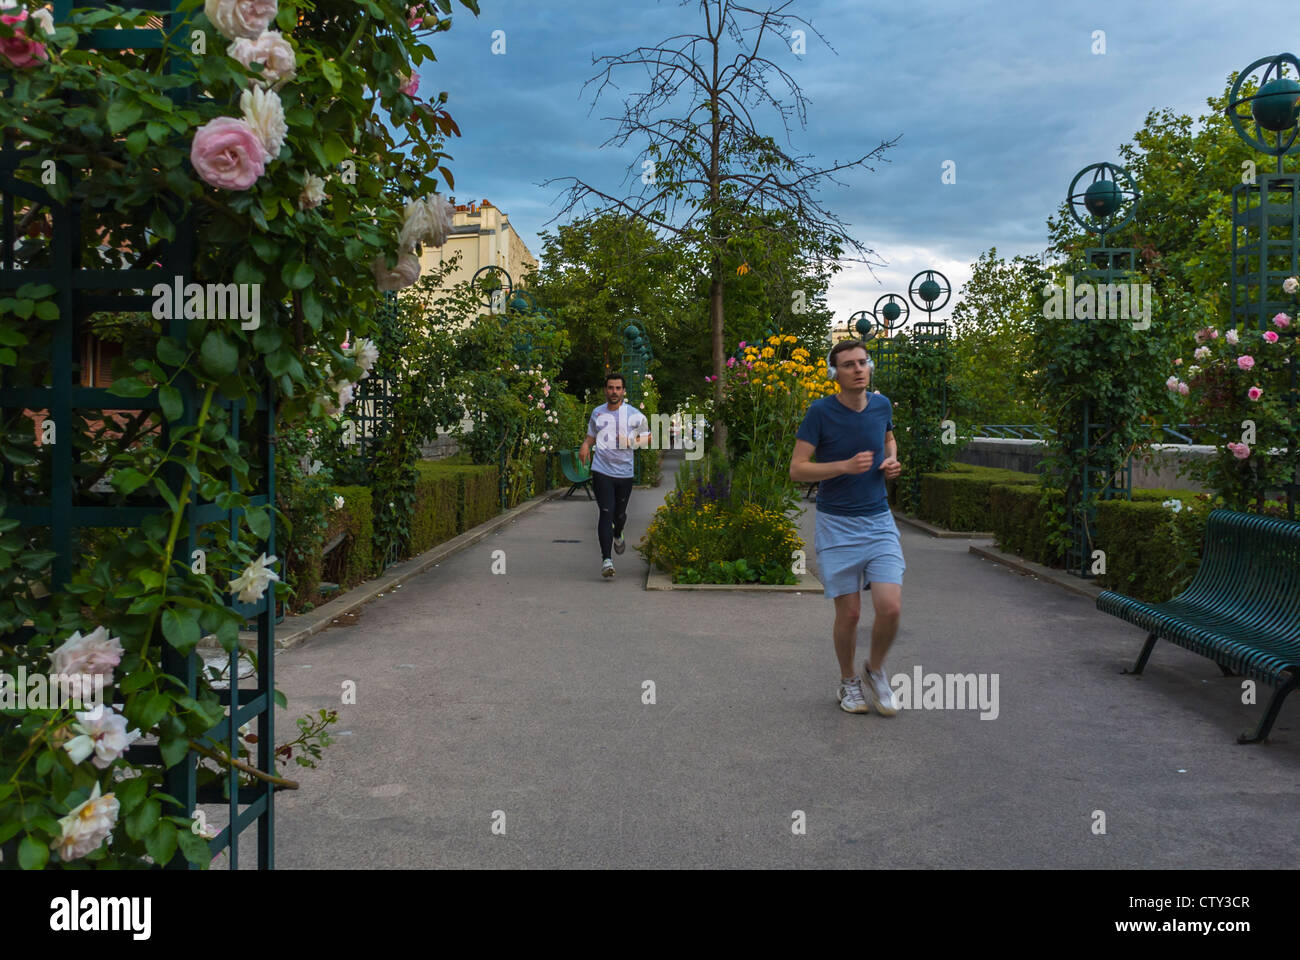 Paris, France, People Jogging on Pathway in 'Promenade Plantée' park, adult extracurricular activities - Stock Image